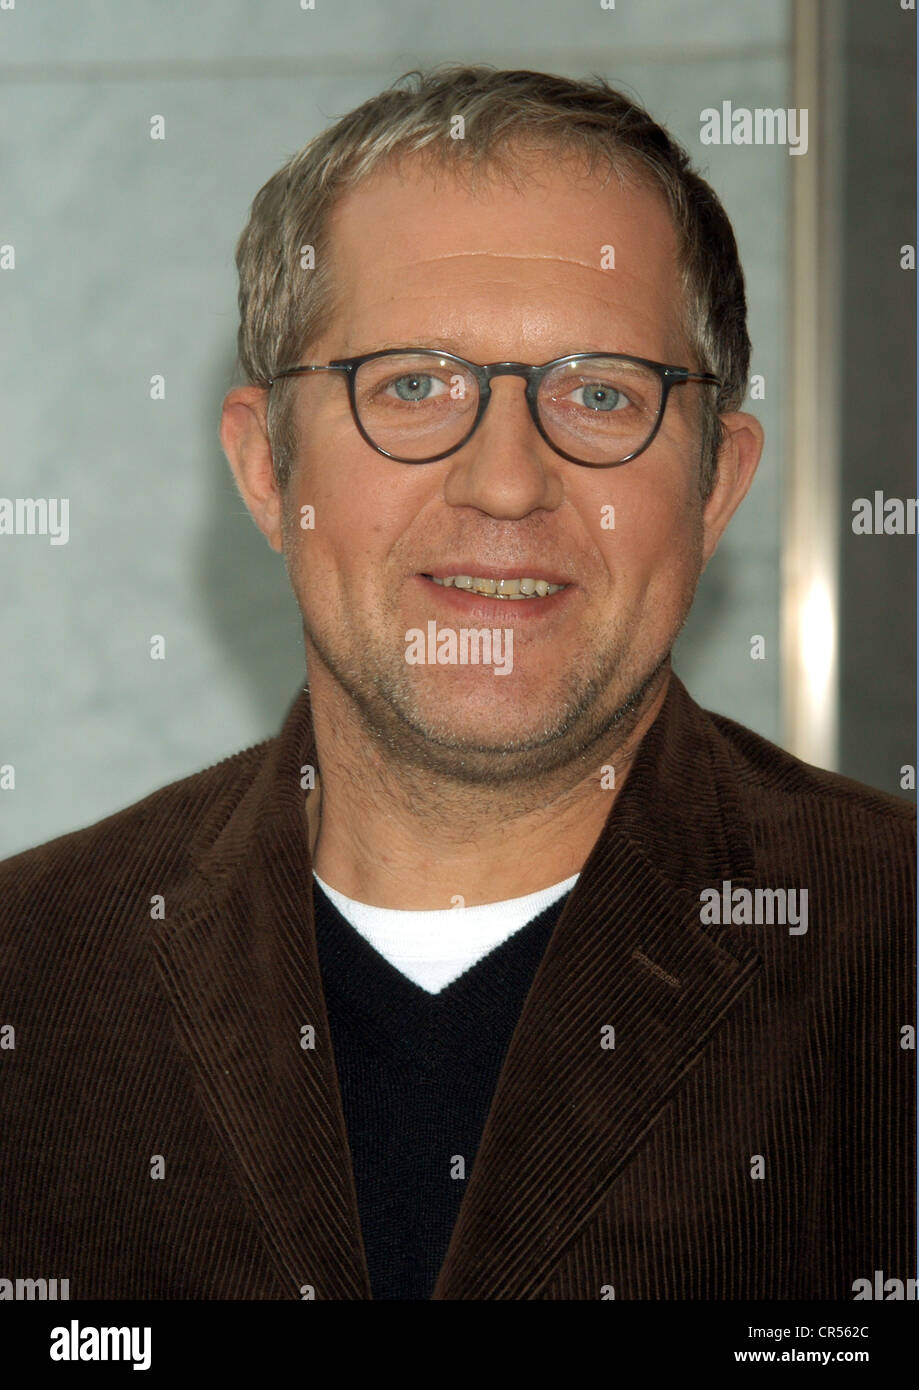 Krassnitzer, Harald, * 10.9.1960, Austrian actor, portrait, 2003, Additional-Rights-Clearances-NA - Stock Image